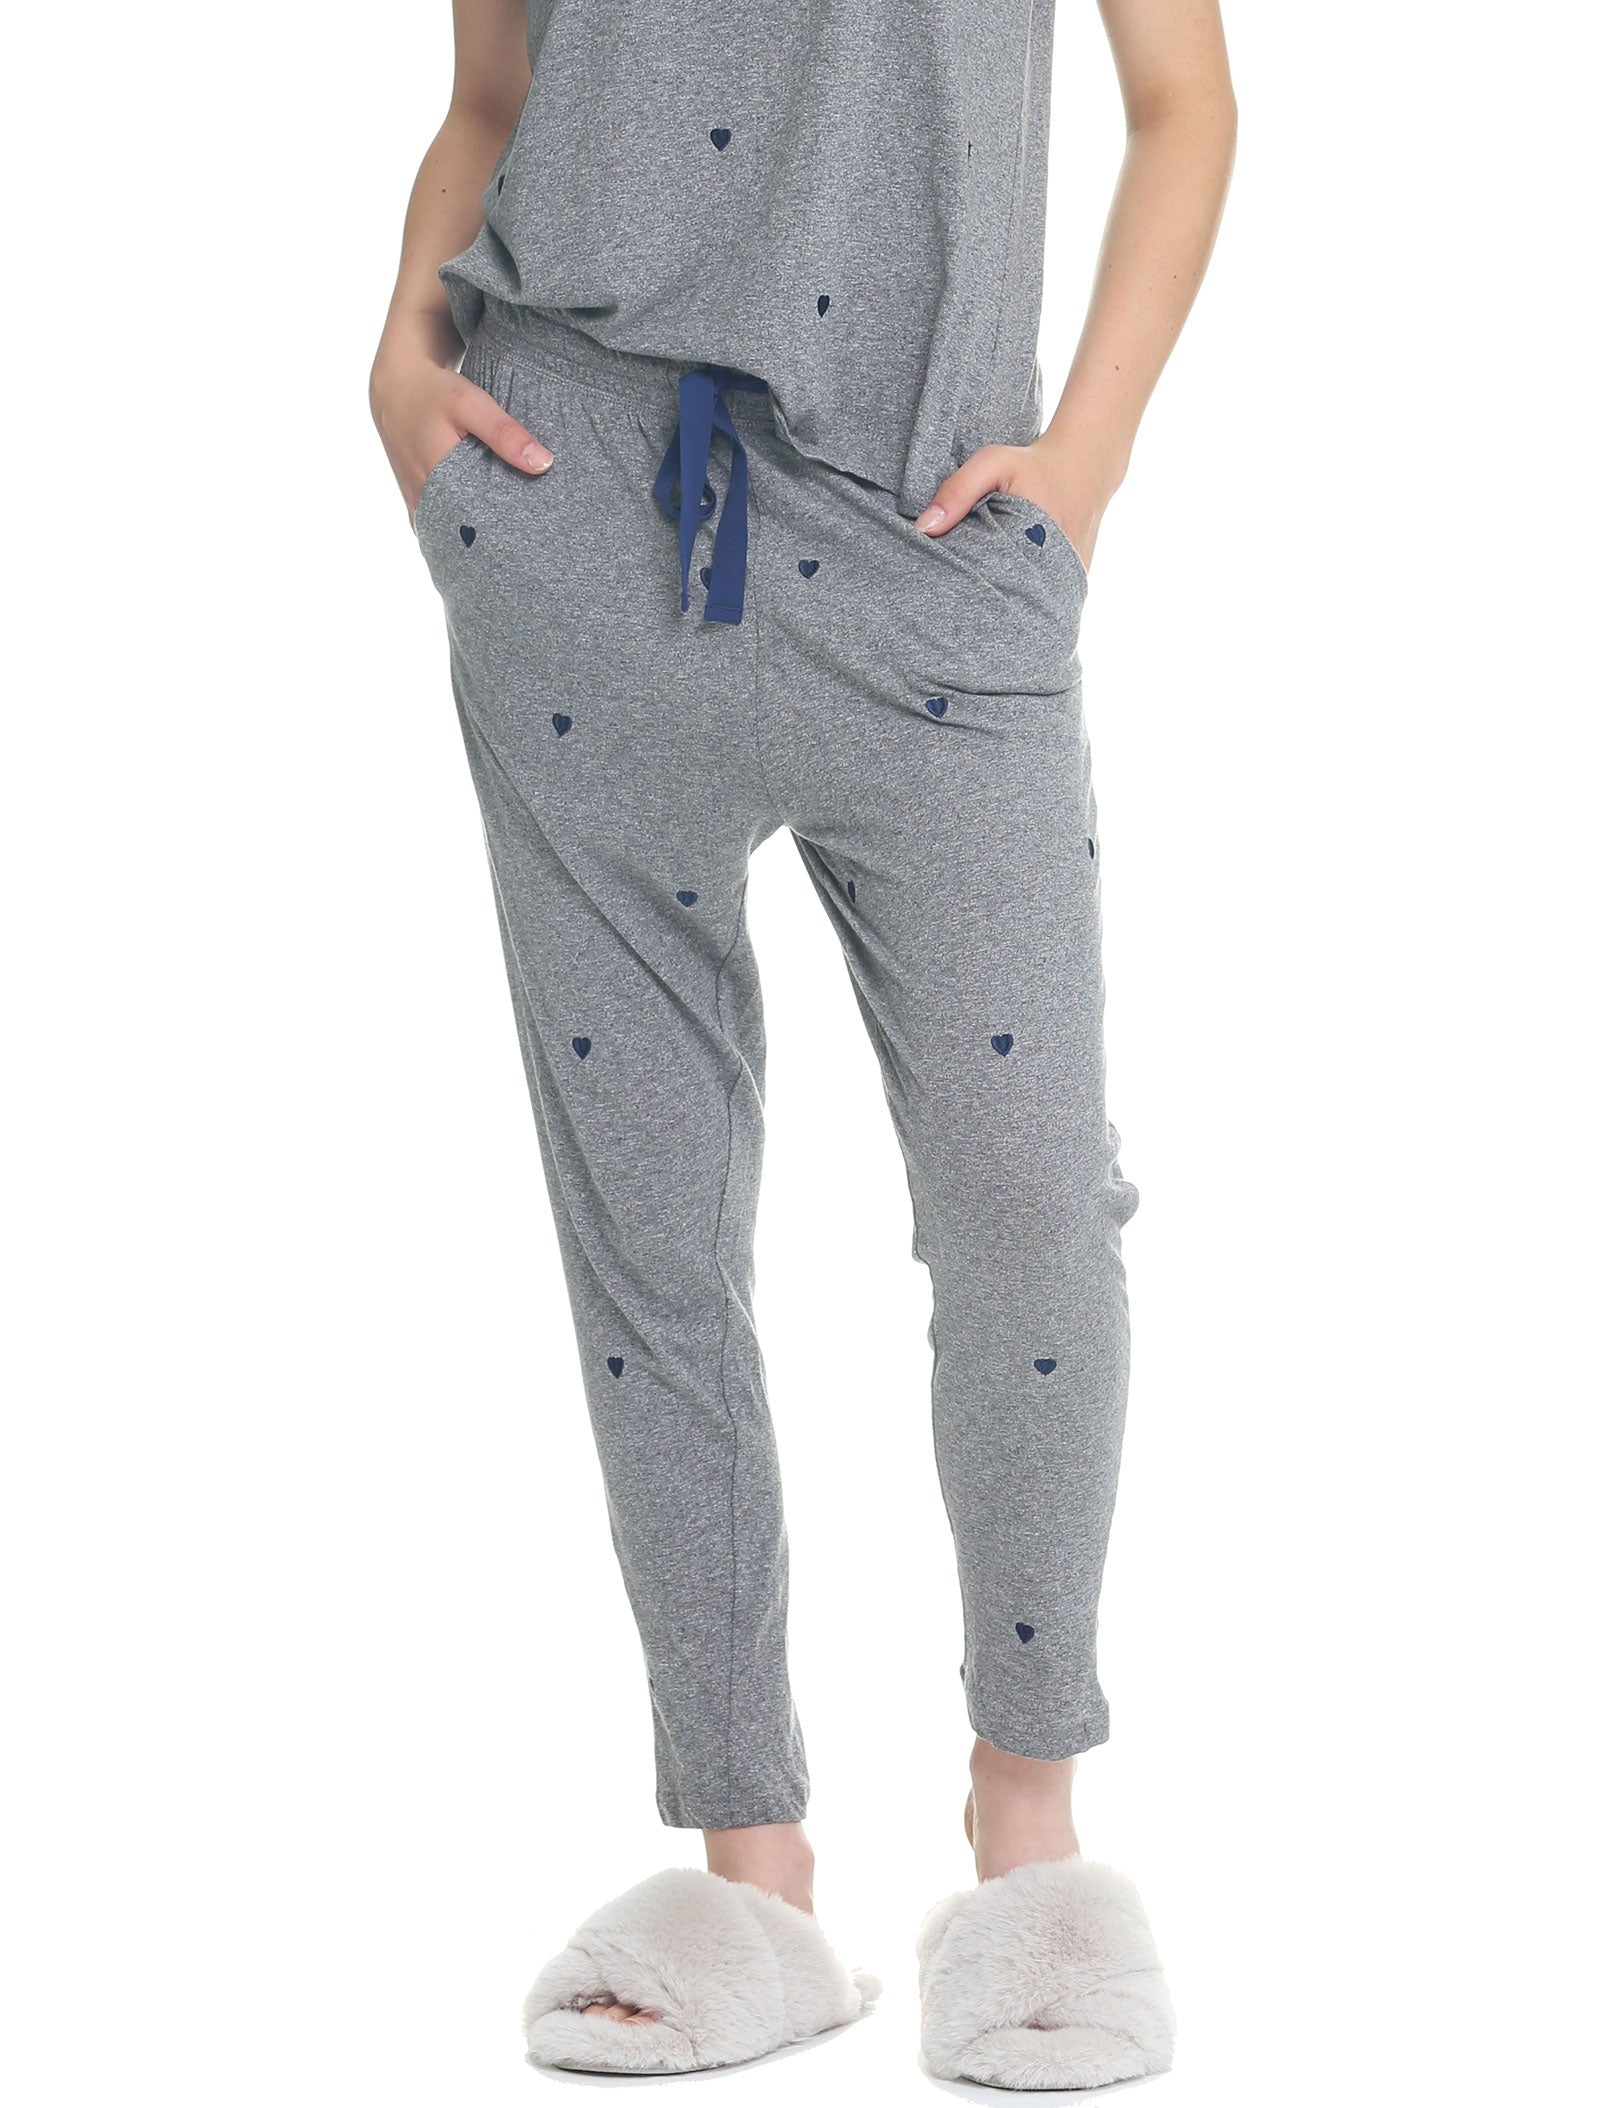 Navy Hearts Organic Cotton Knit Pant